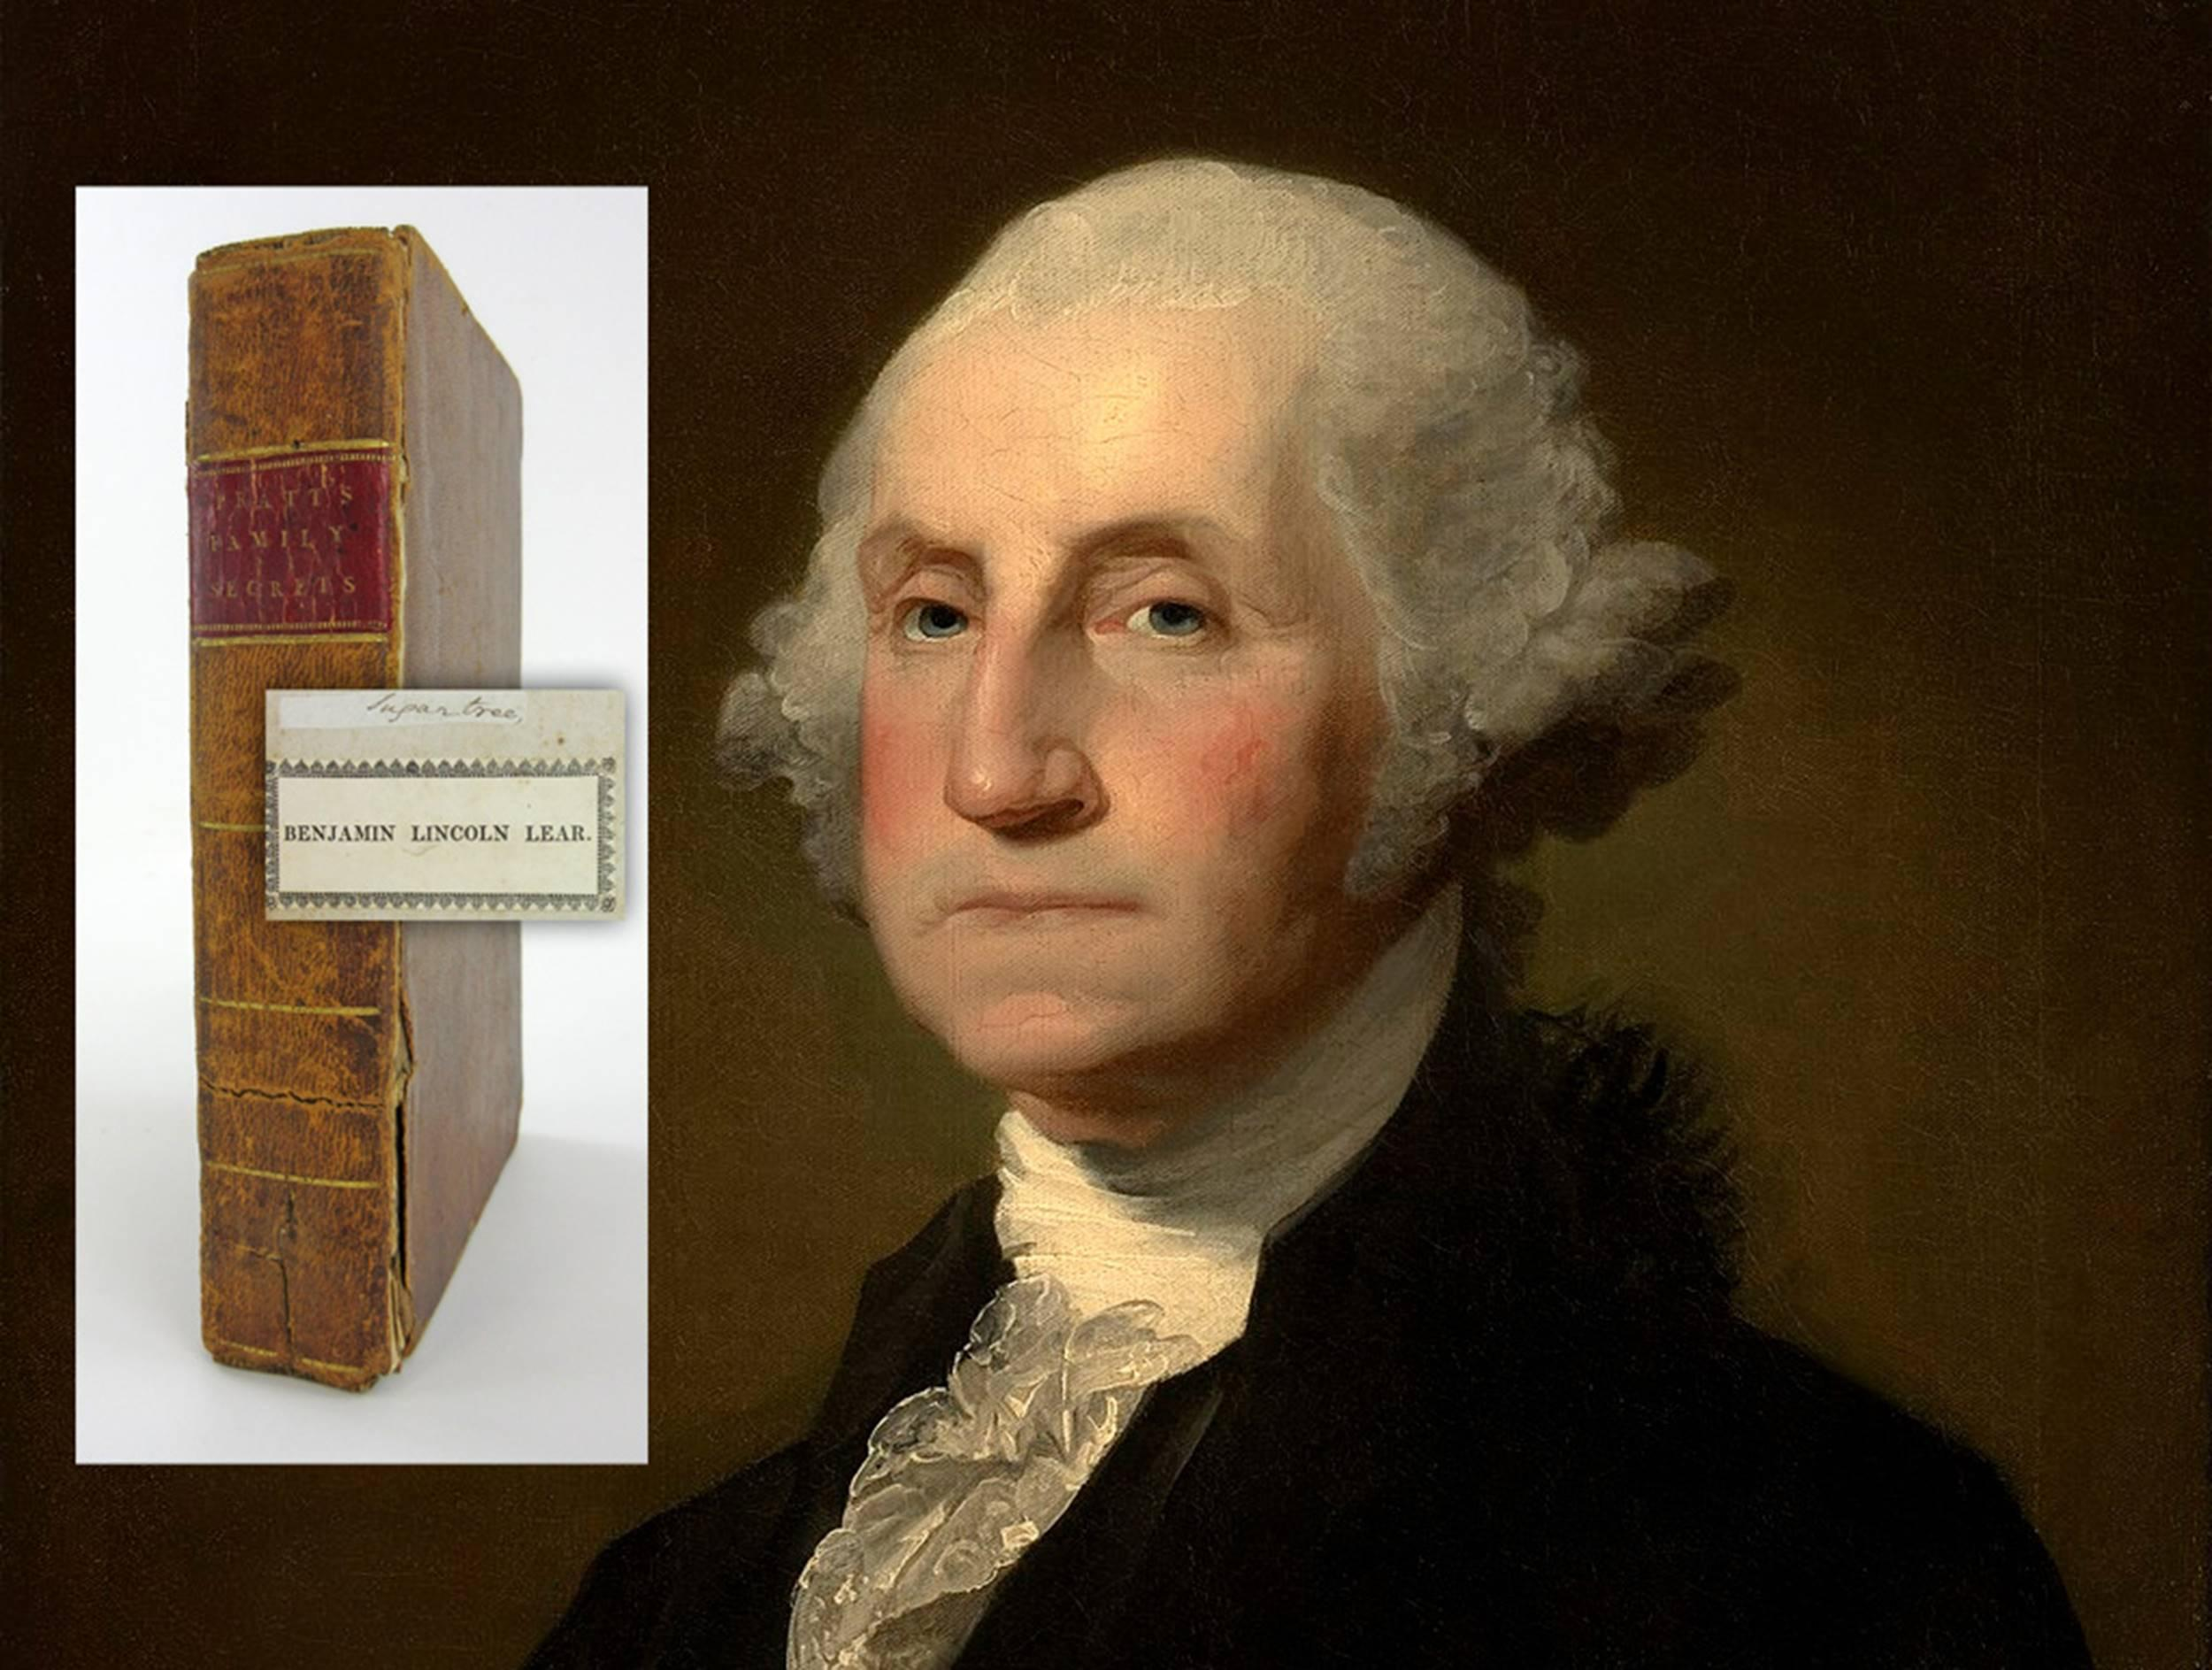 Volume V from the Library of George Washington, with words written by Washington tipped into the book